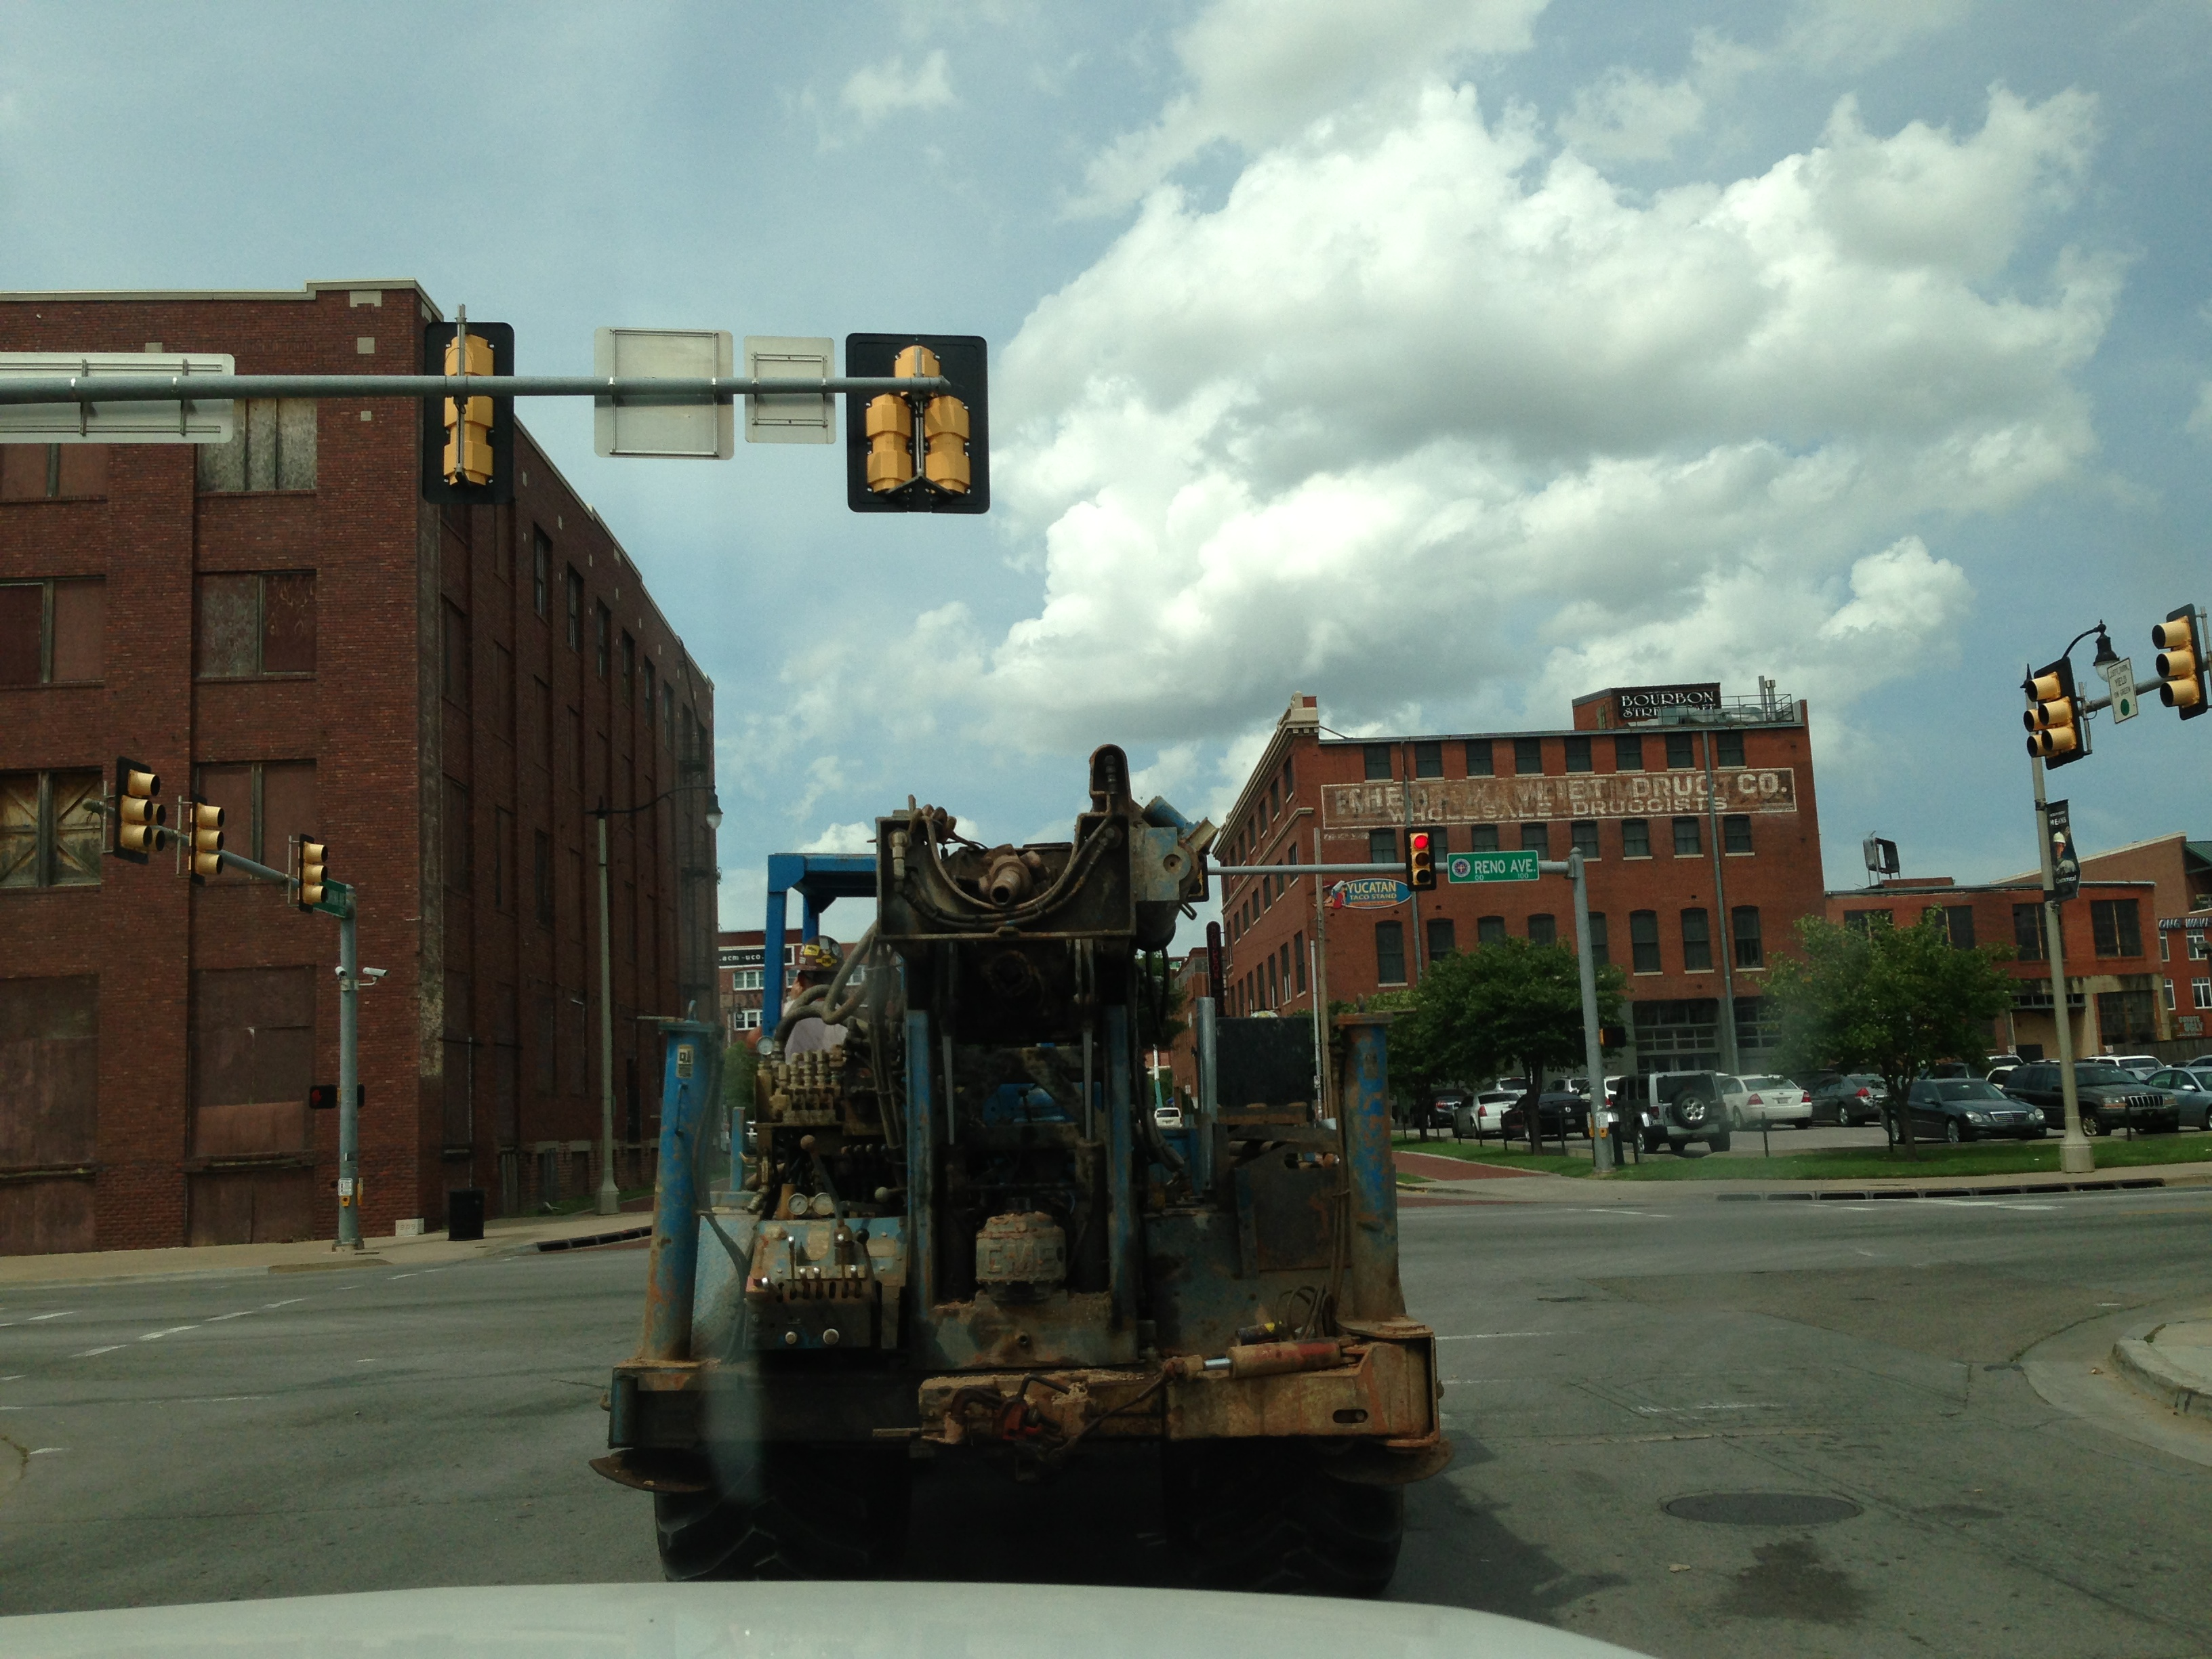 Drilling Rig in Bricktown